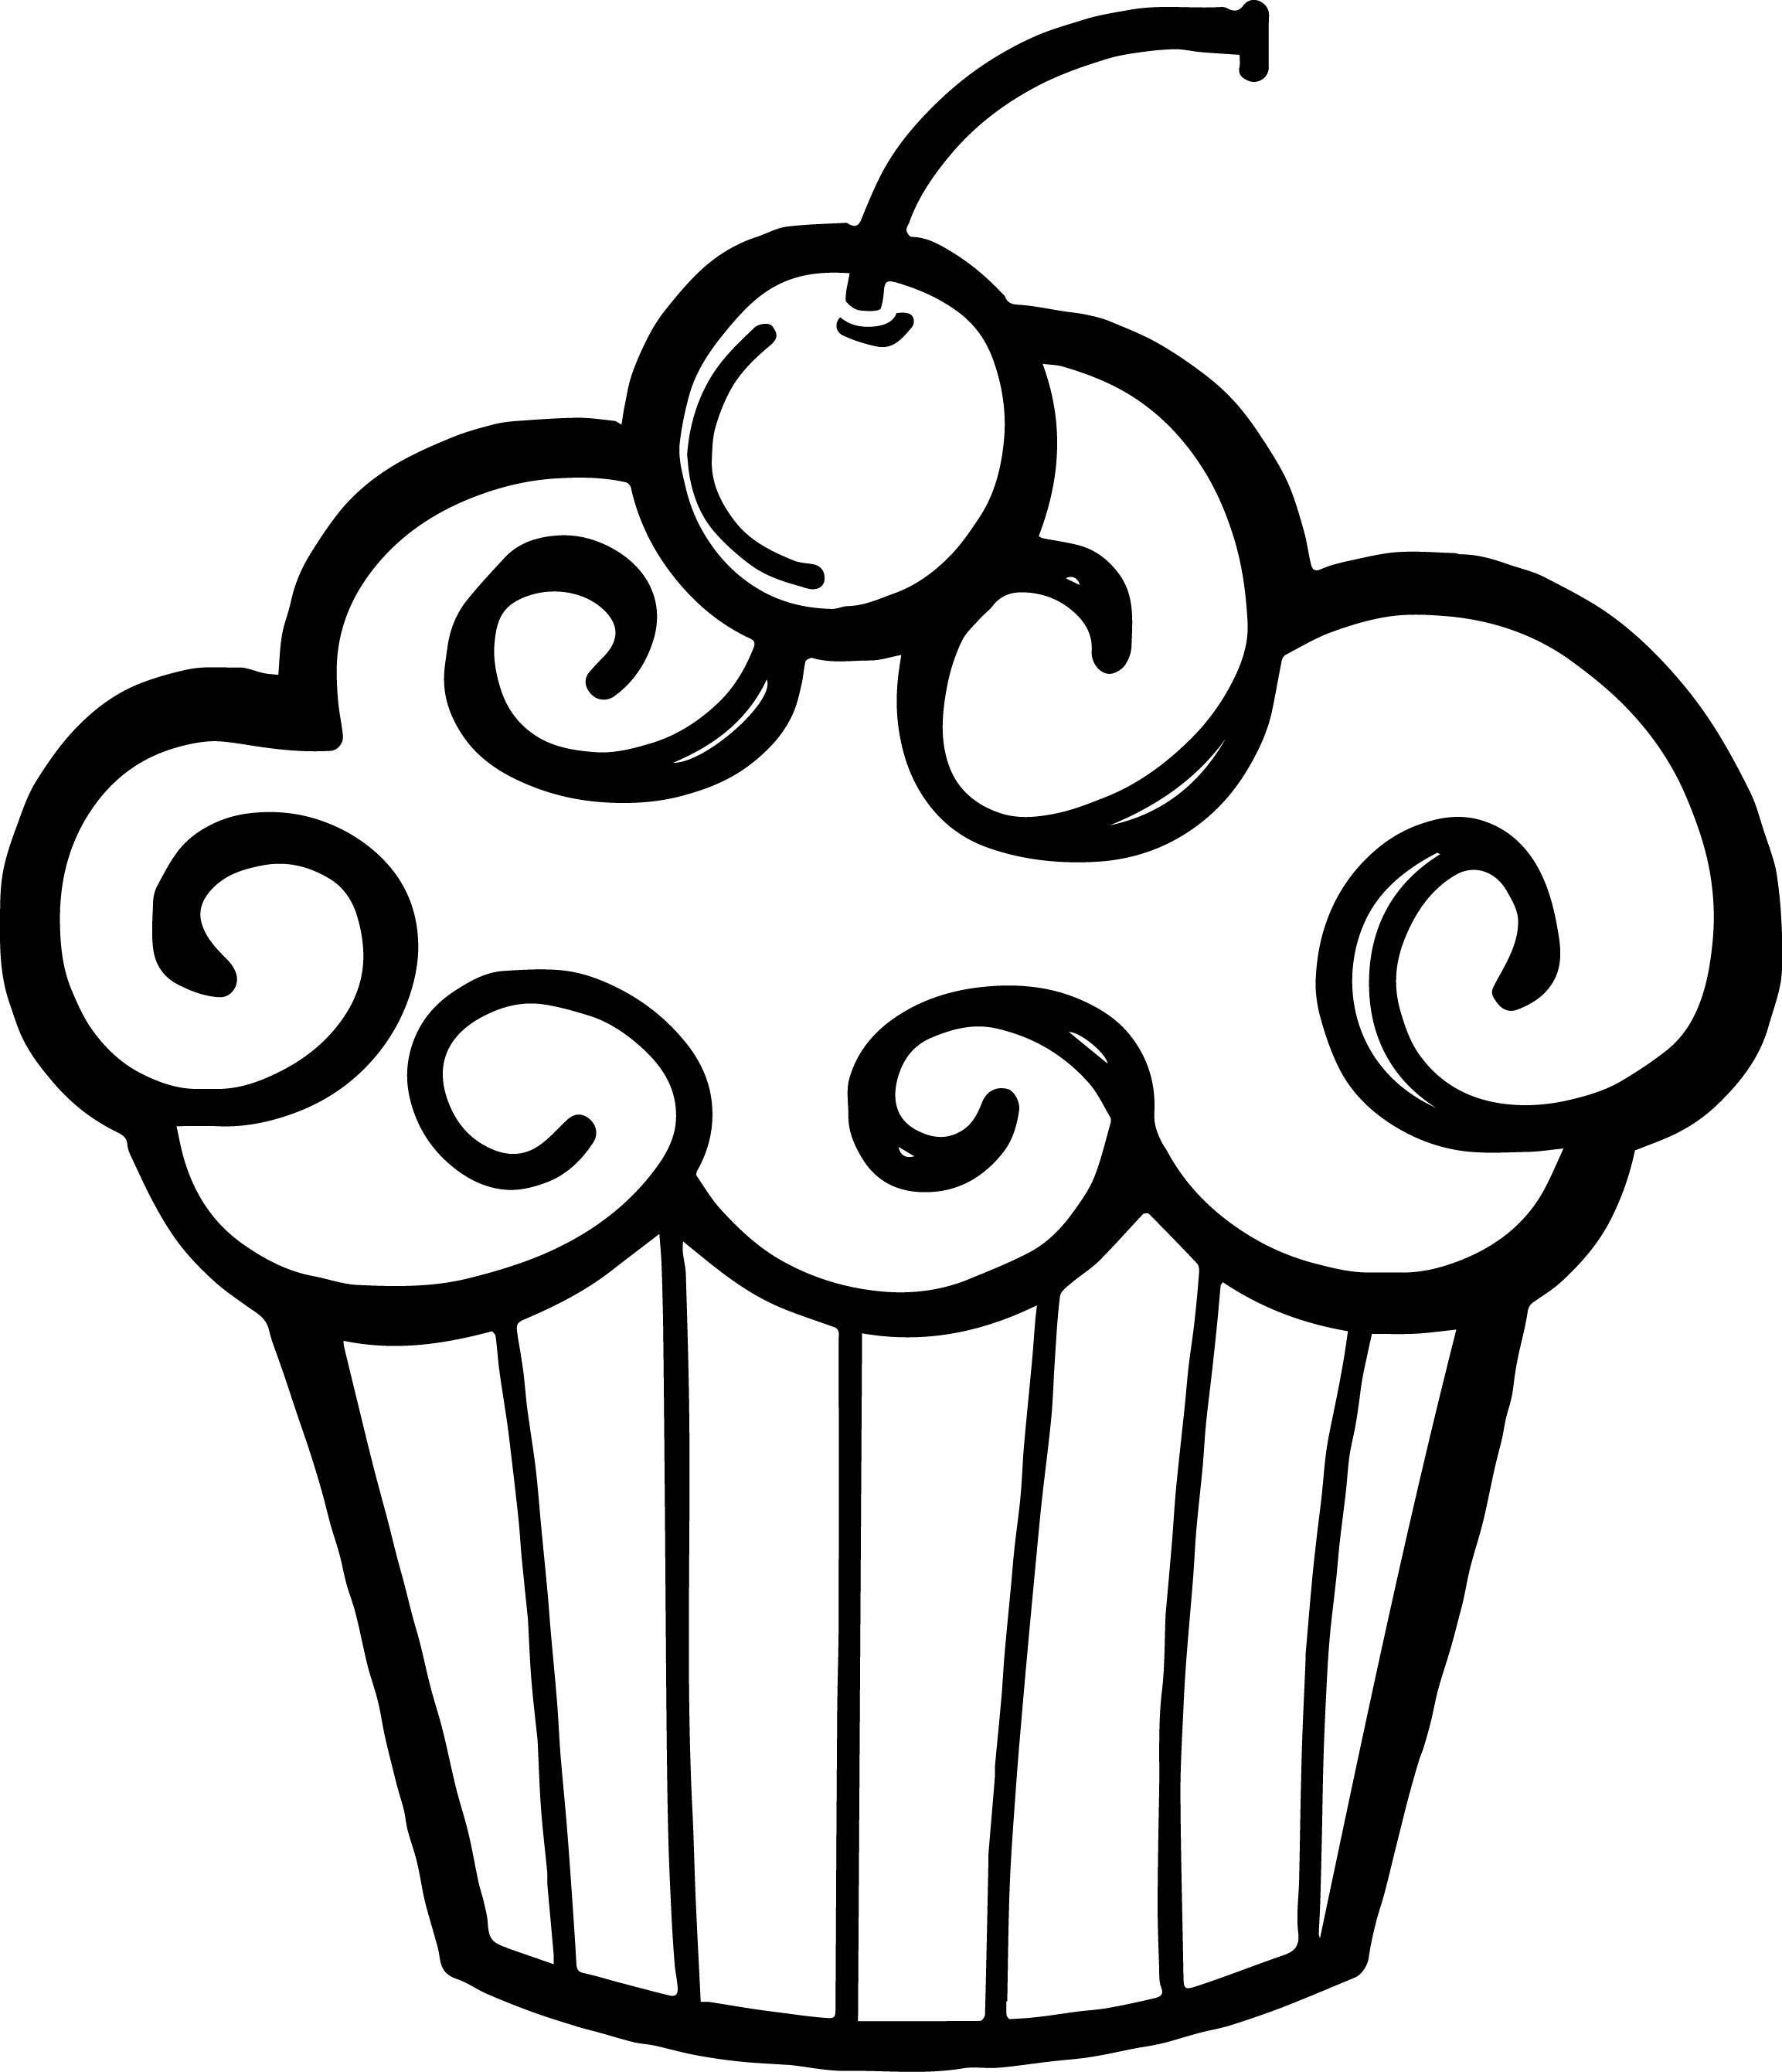 Black and white birthday clipart